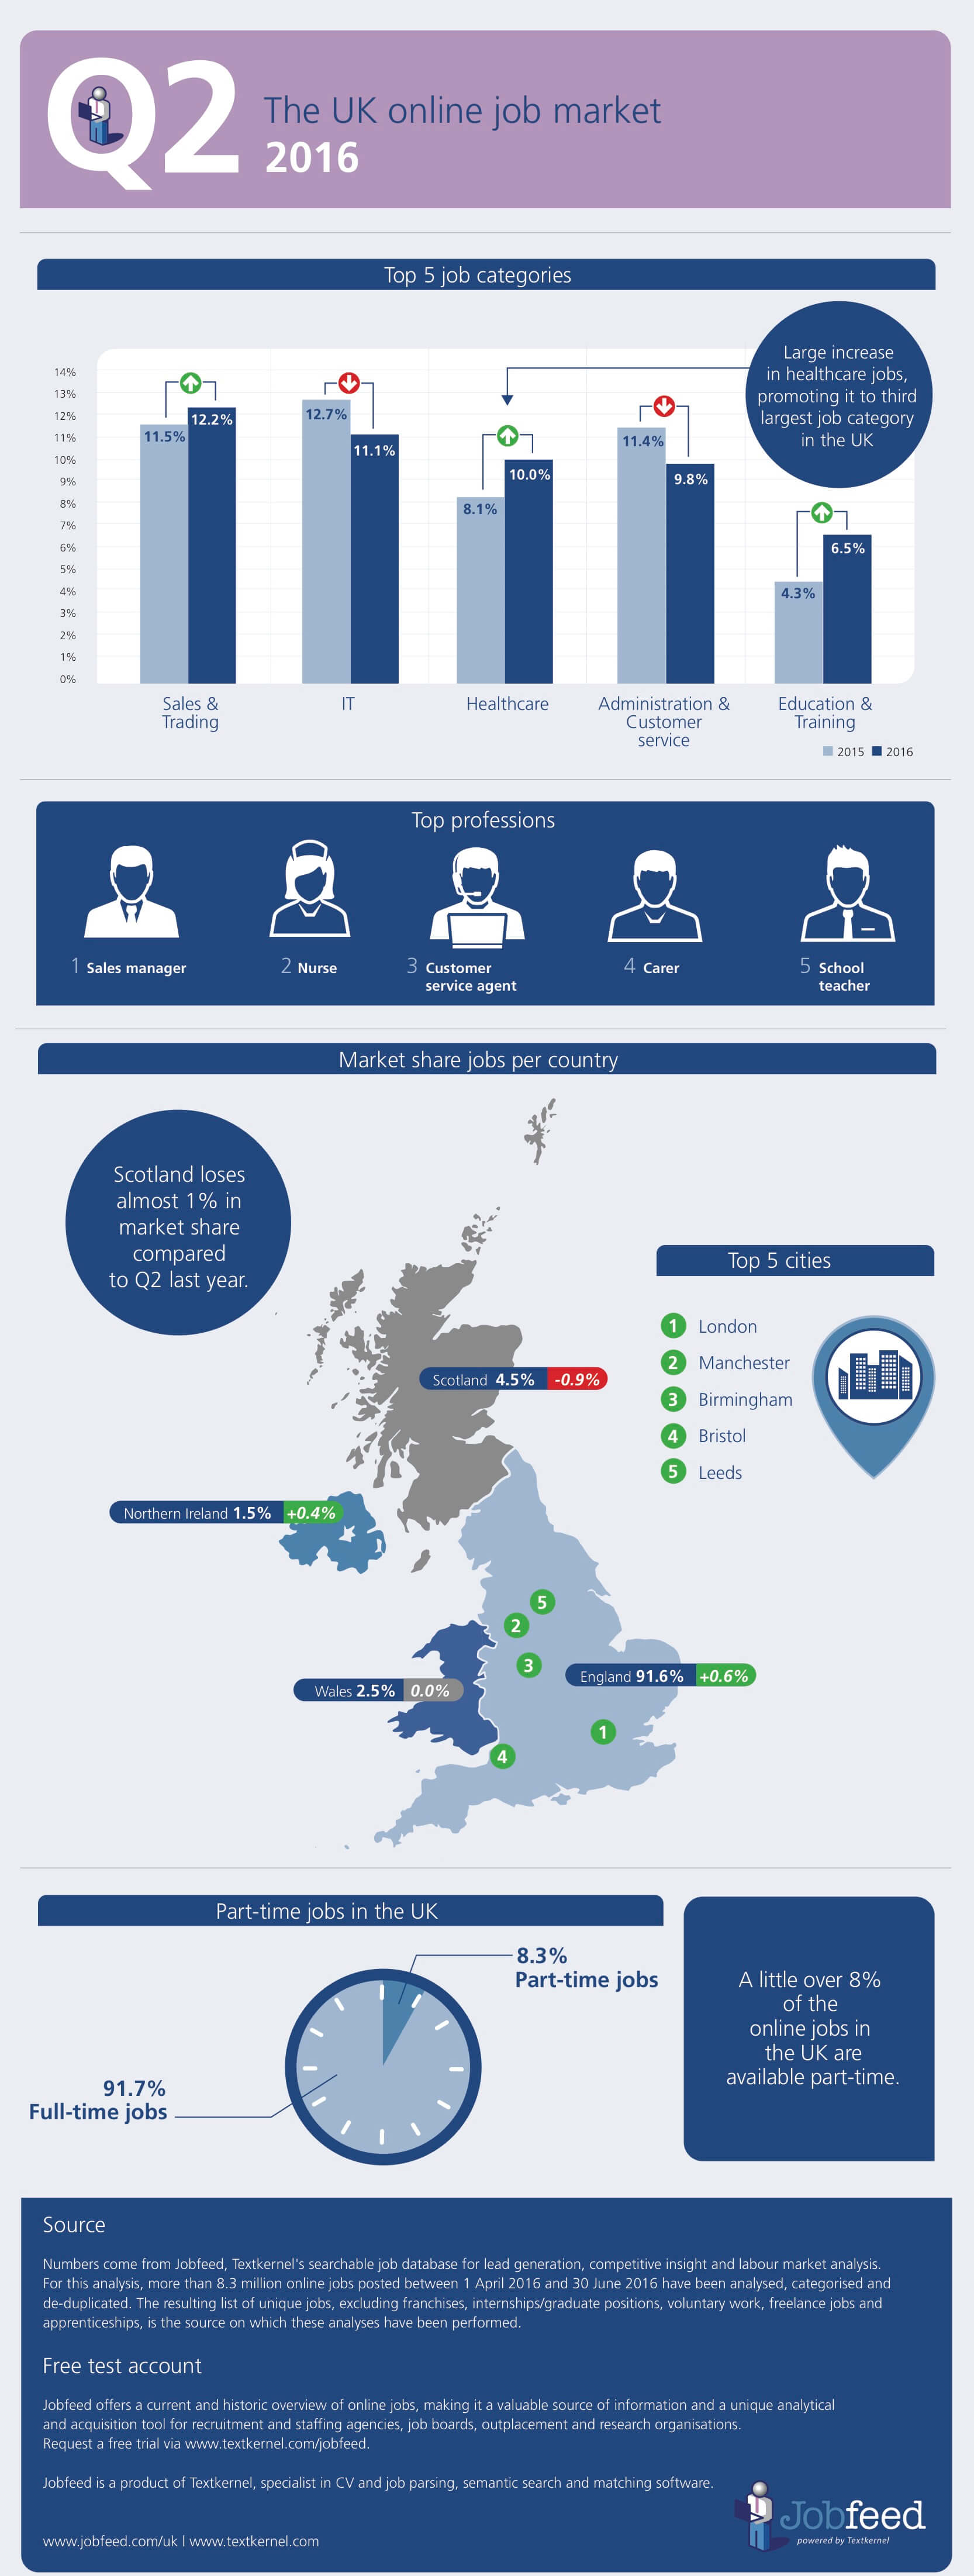 The UK job market in Q2 2016 -Jobfeed